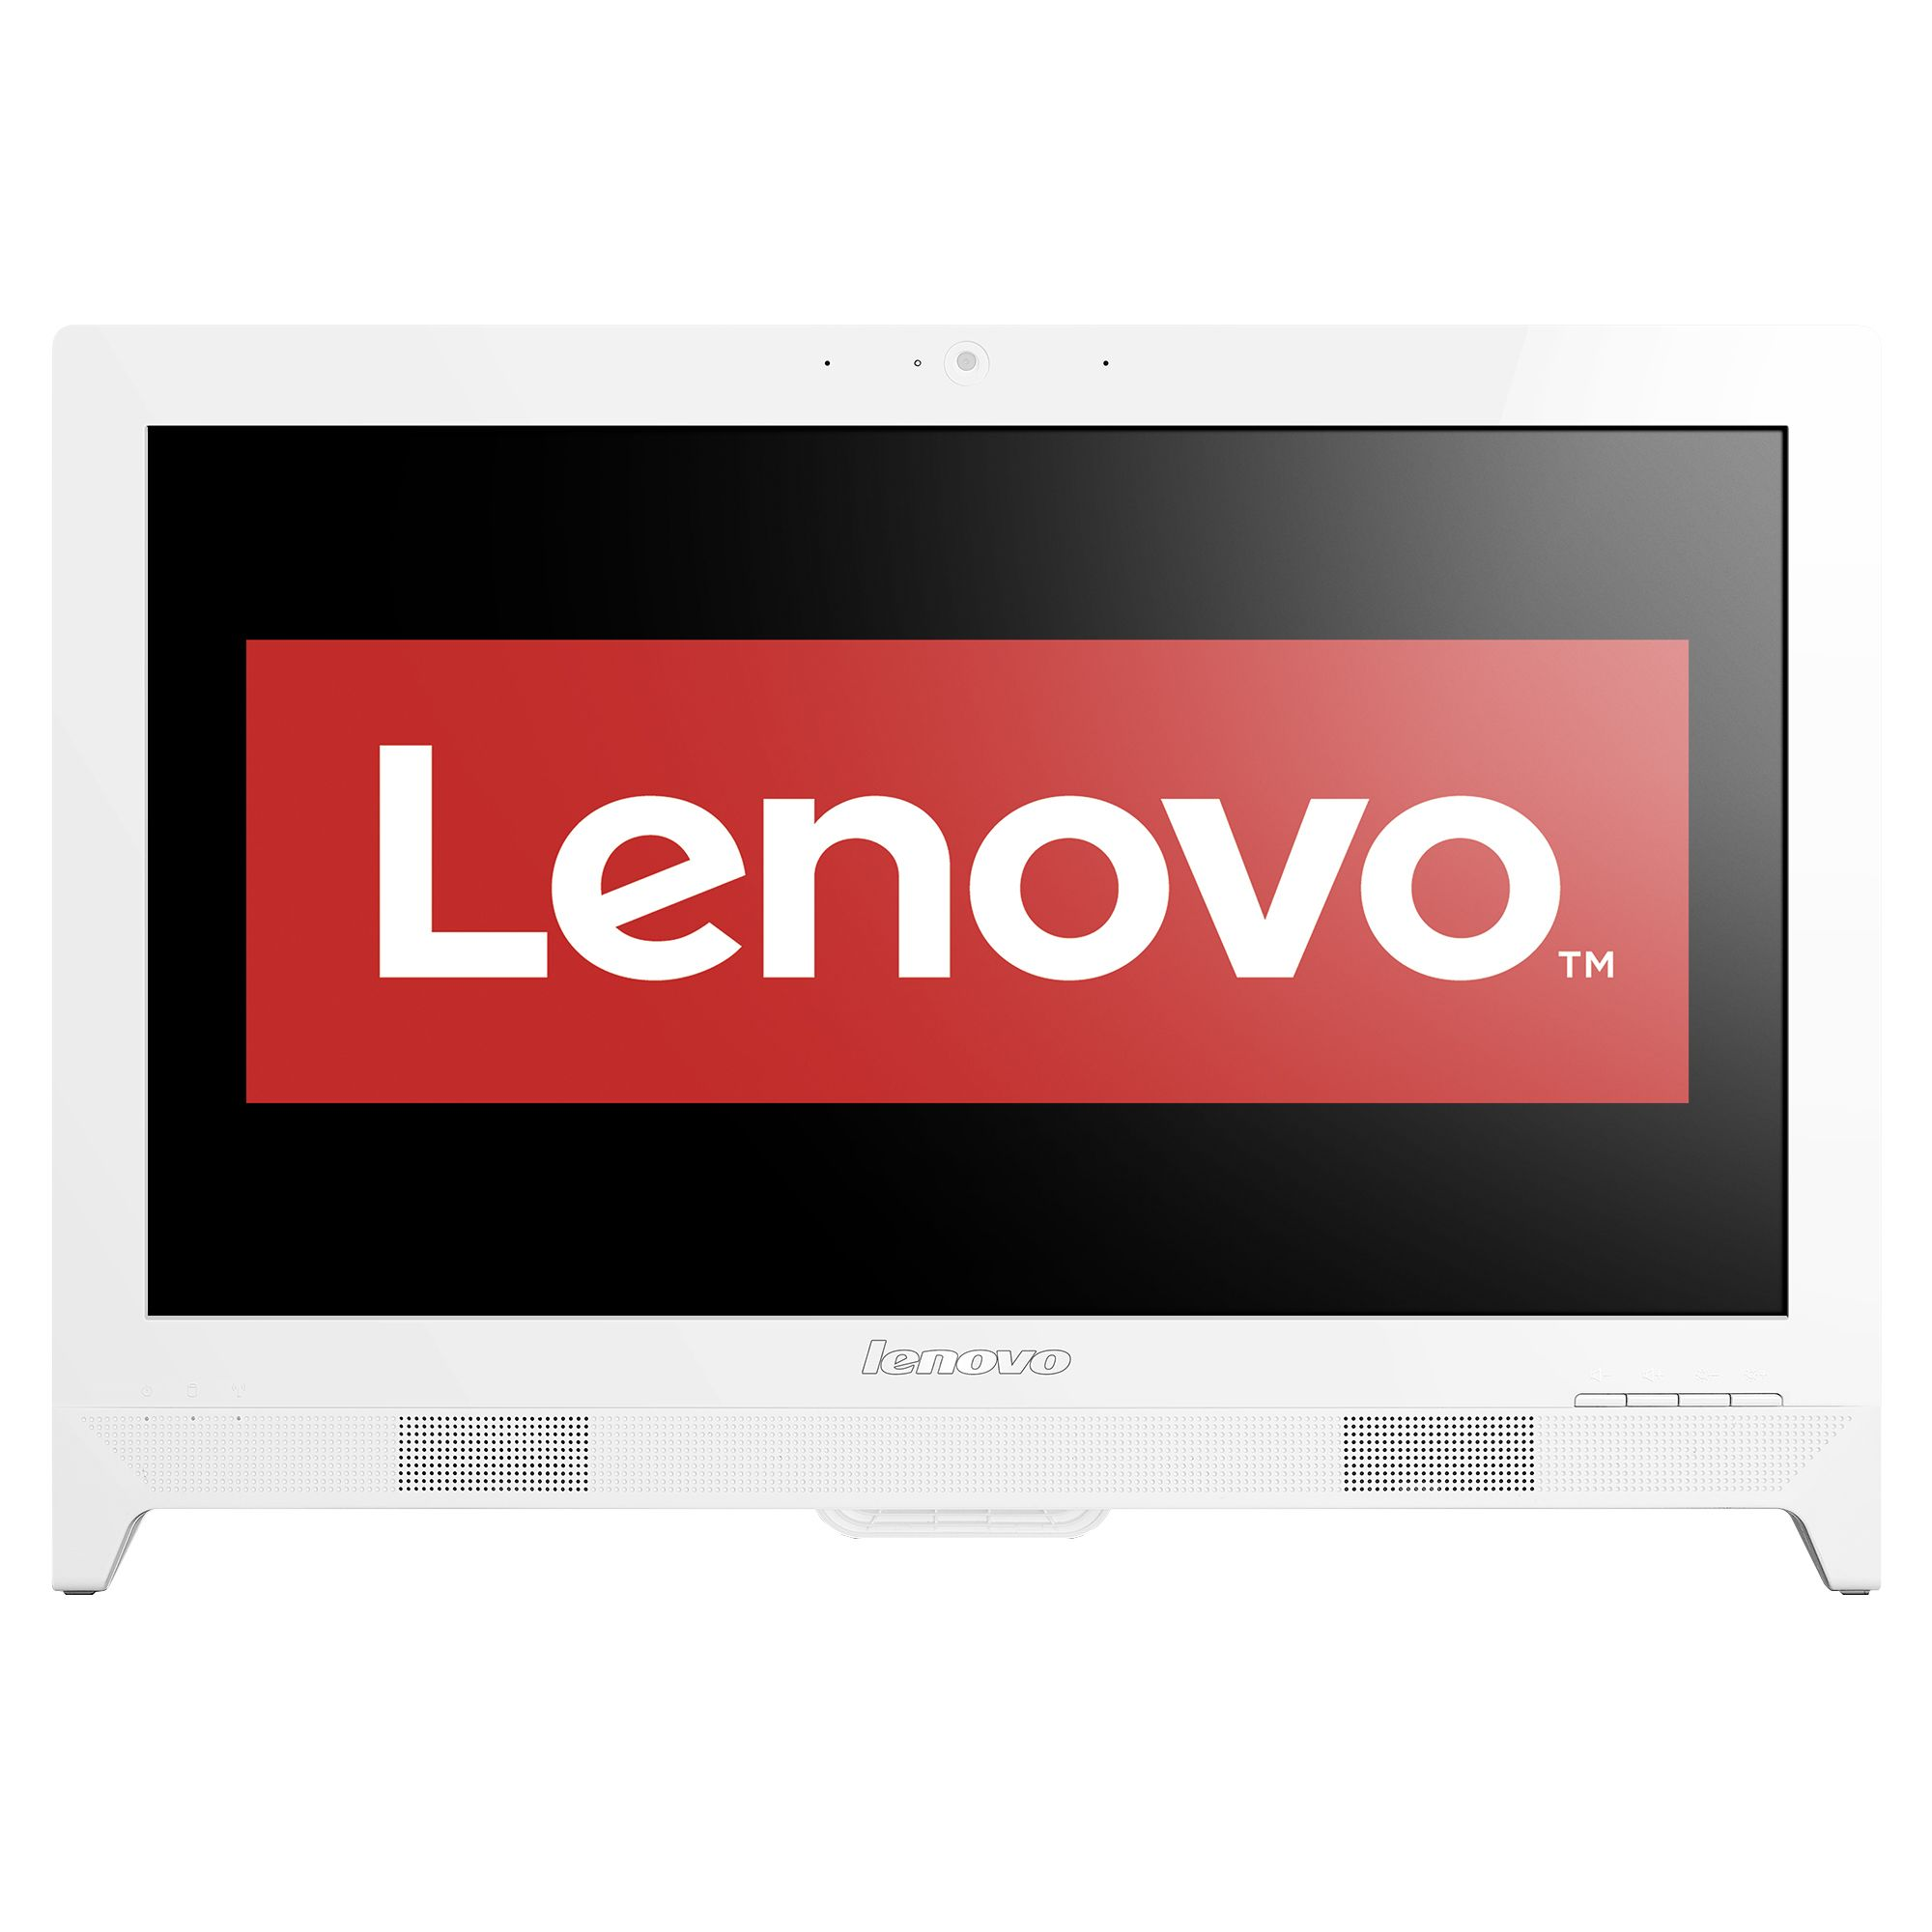 "Настолен компютър Lenovo C260 All-in-One c процесор Intel® Celeron® J1800 2.41GHz, 19.5"" HD+, 4GB, 500GB, DVD-RW, Intel® HD Graphics, Free DOS, Мишка + Клавиатура, Black"